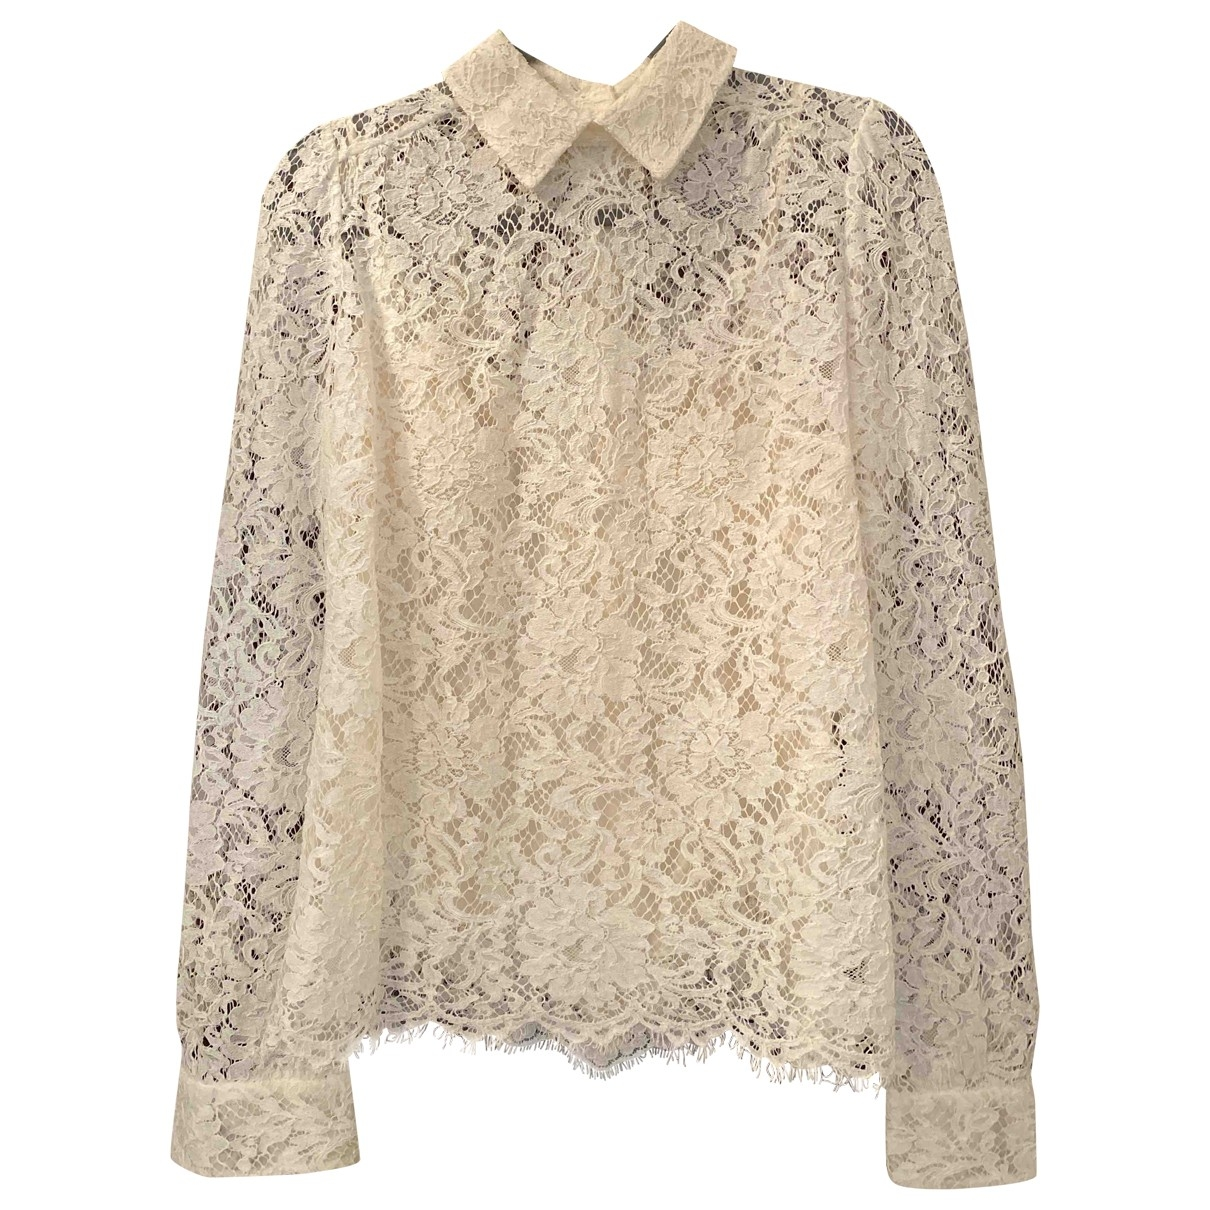 Dolce & Gabbana \N White Lace  top for Women 38 IT